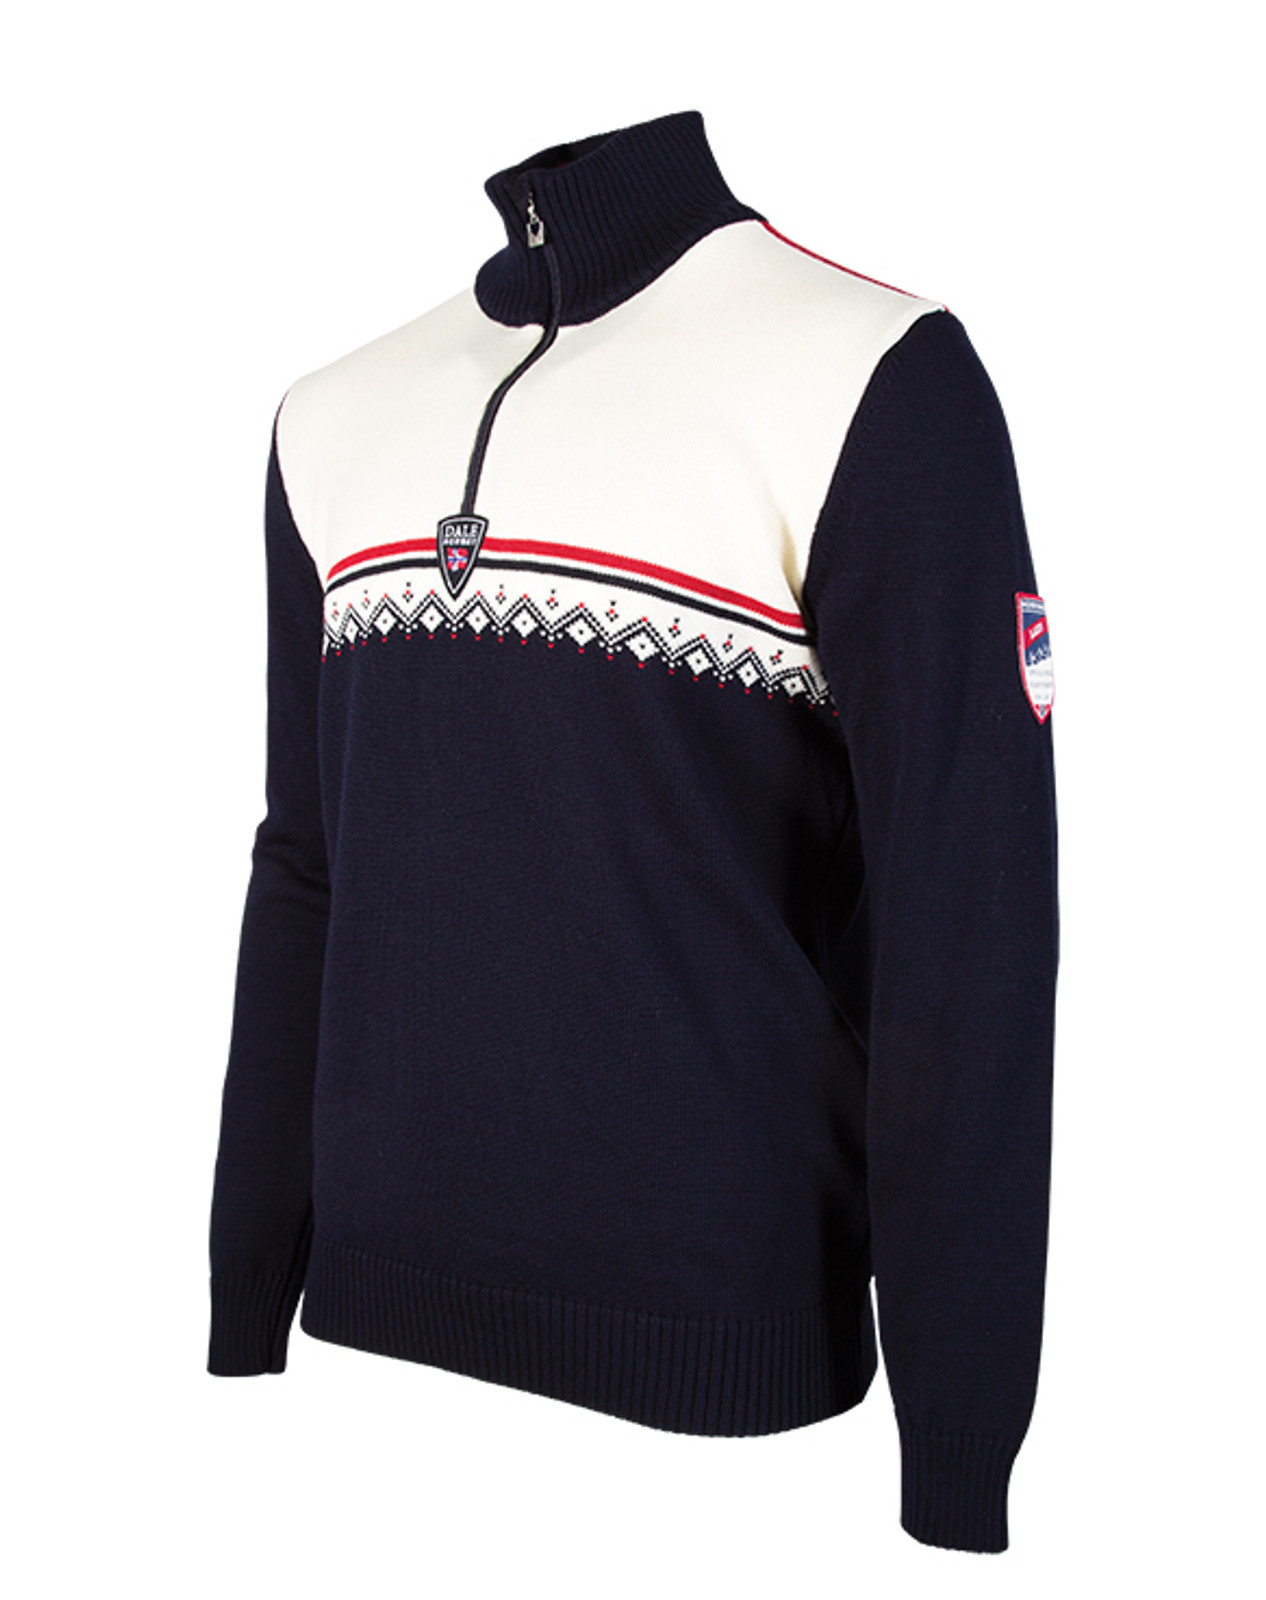 Alternate view of the Dale of Norway Lahti Sweater, Mens, inNavy/Raspberry/Off White, 93241-C